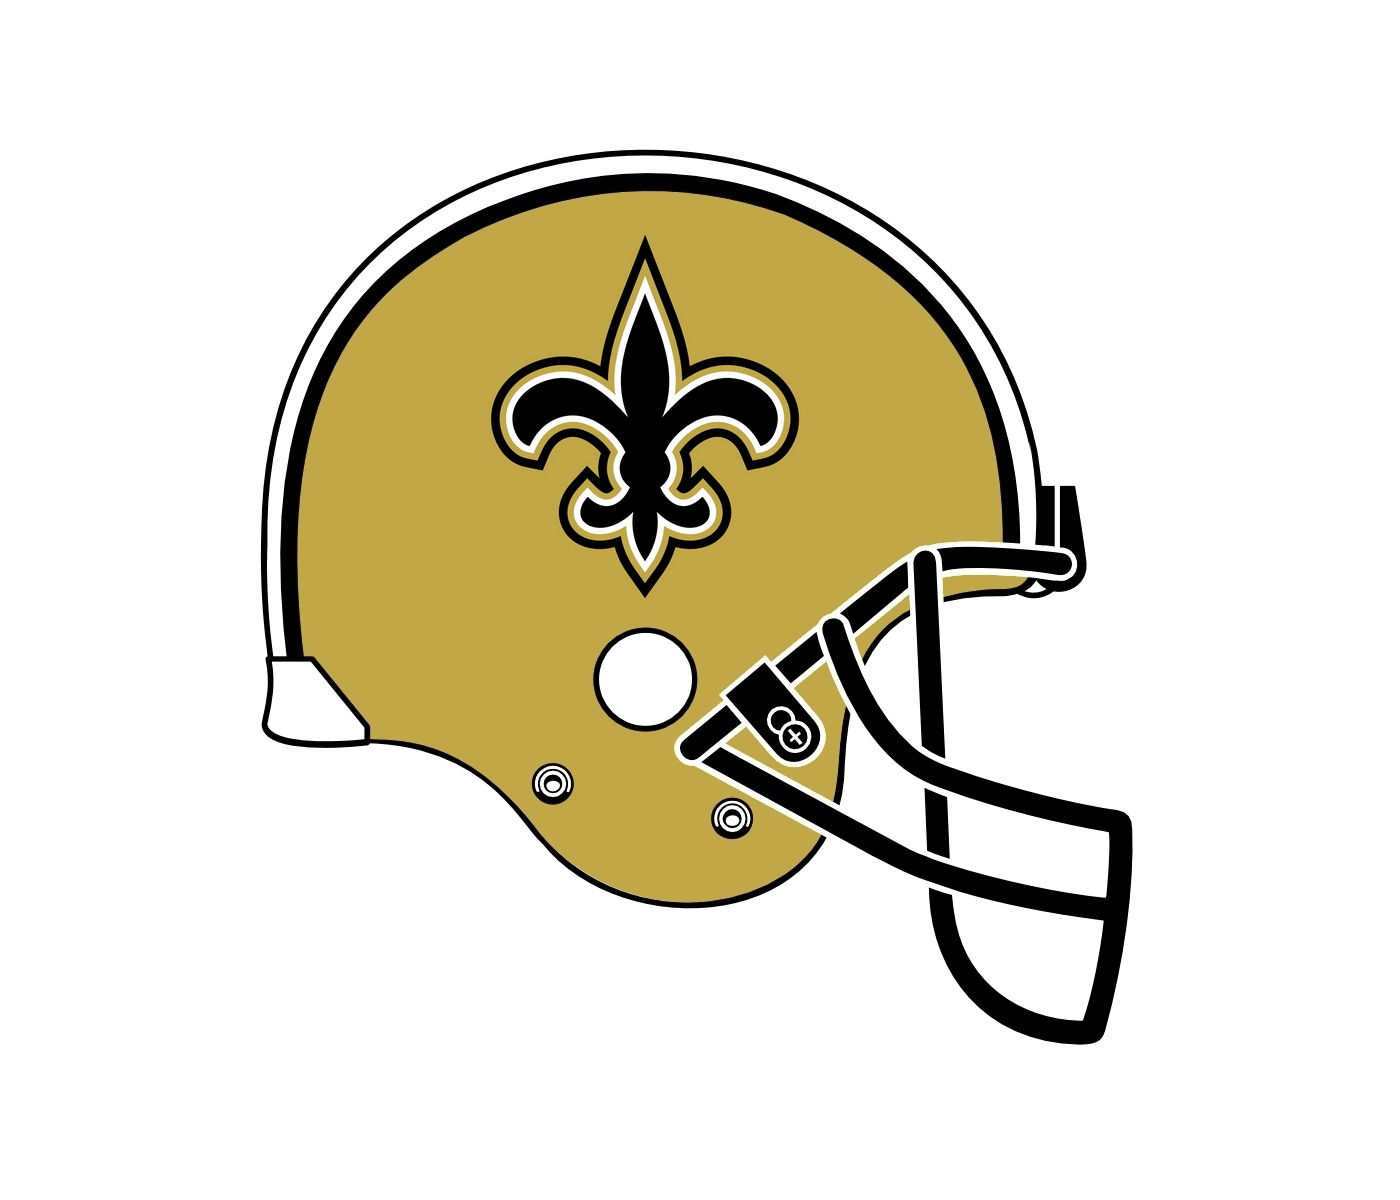 Clipart free on dumielauxepices. Saints helmet png